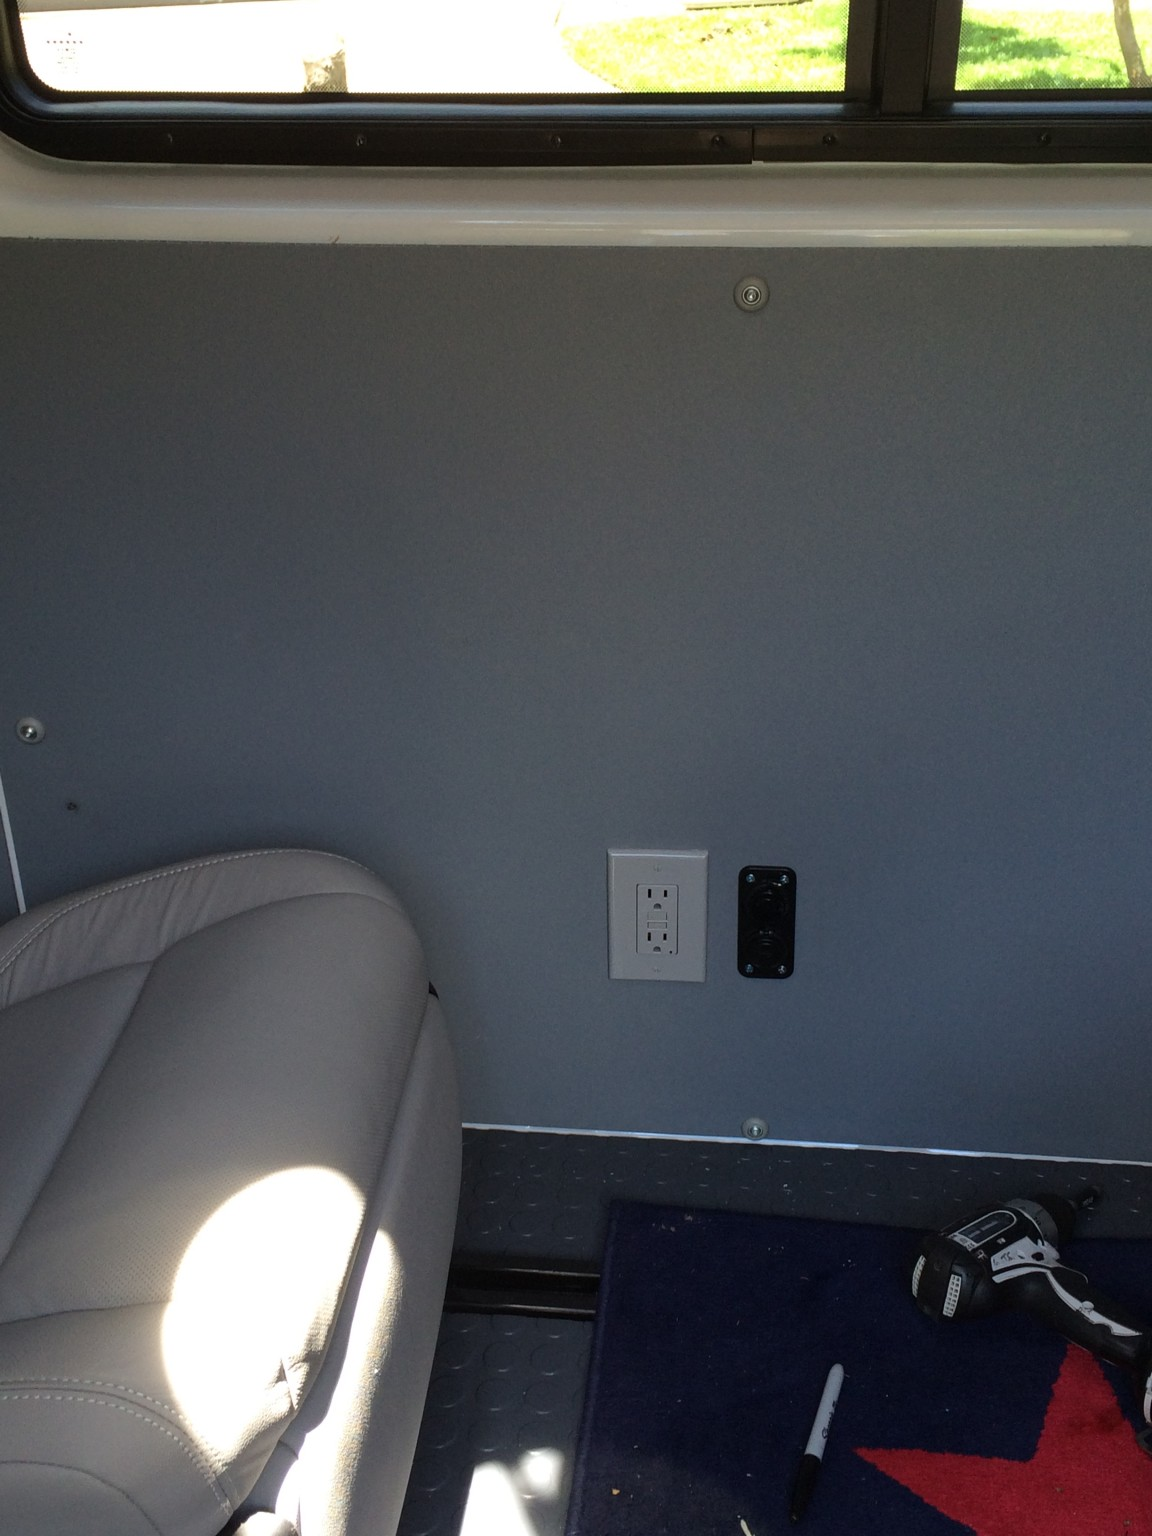 Installed AC/DC outlets in my Sprinter camper van